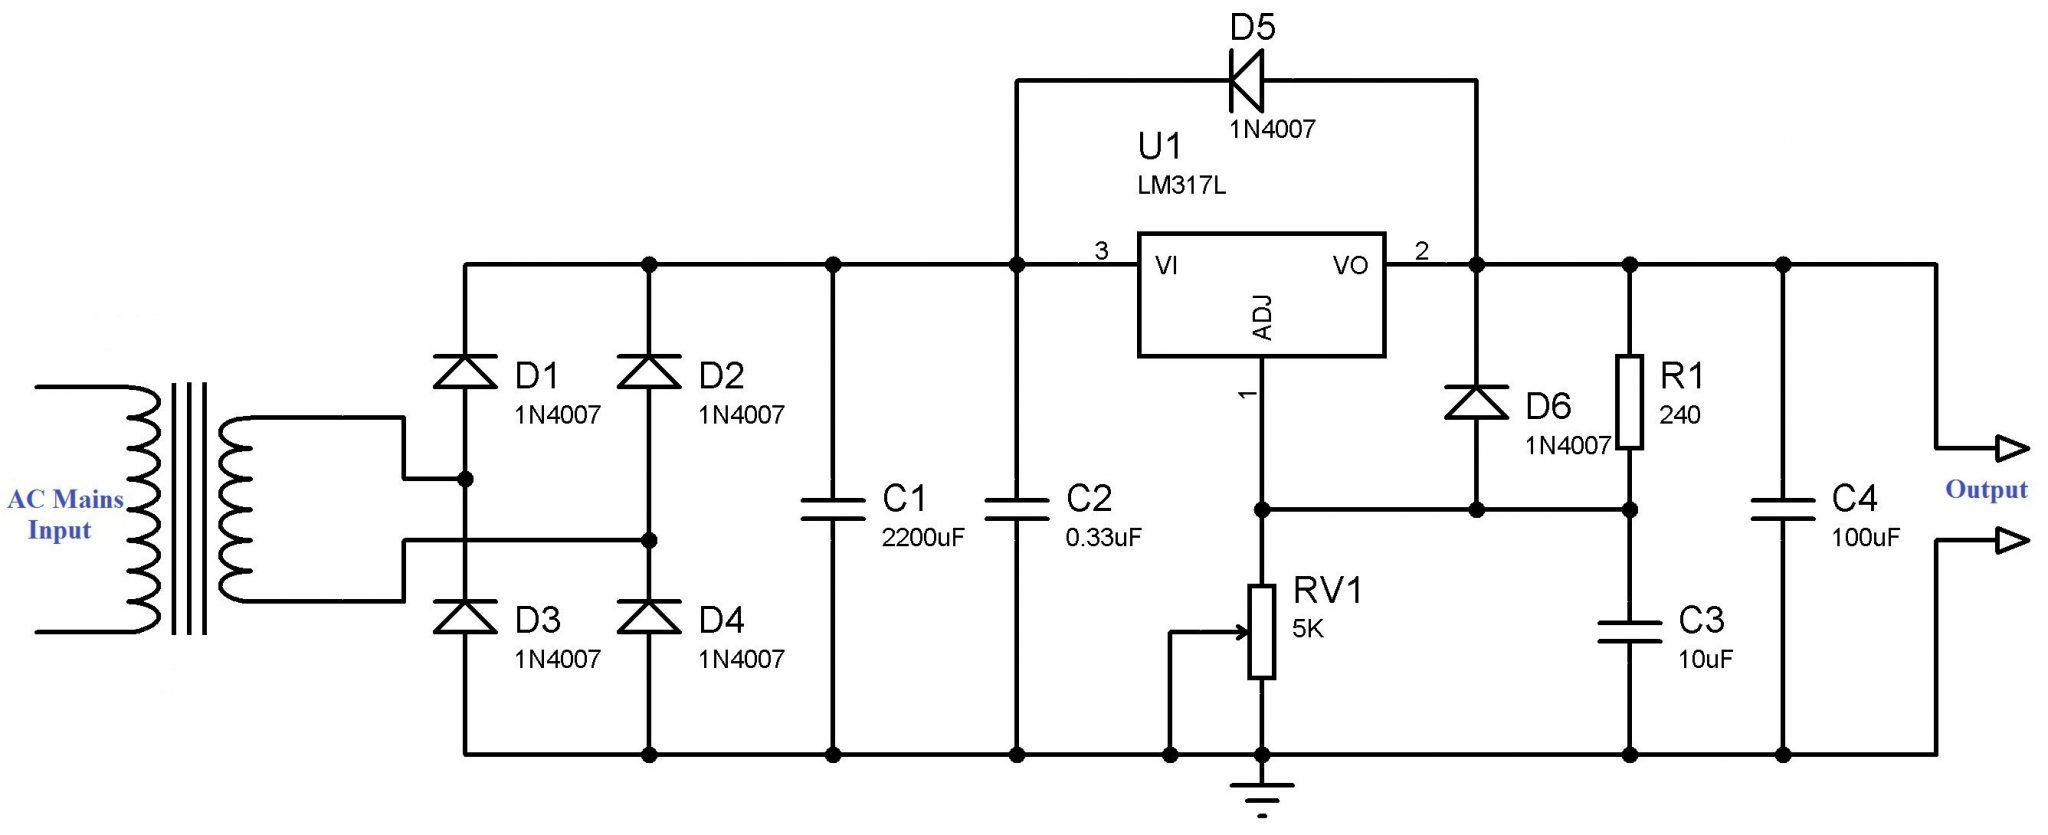 Variable Power Supply Using Lm317 Voltage Regulator Electronics Circuit Diagrams Archive Free Projects For Hobbyists Complete Diagram